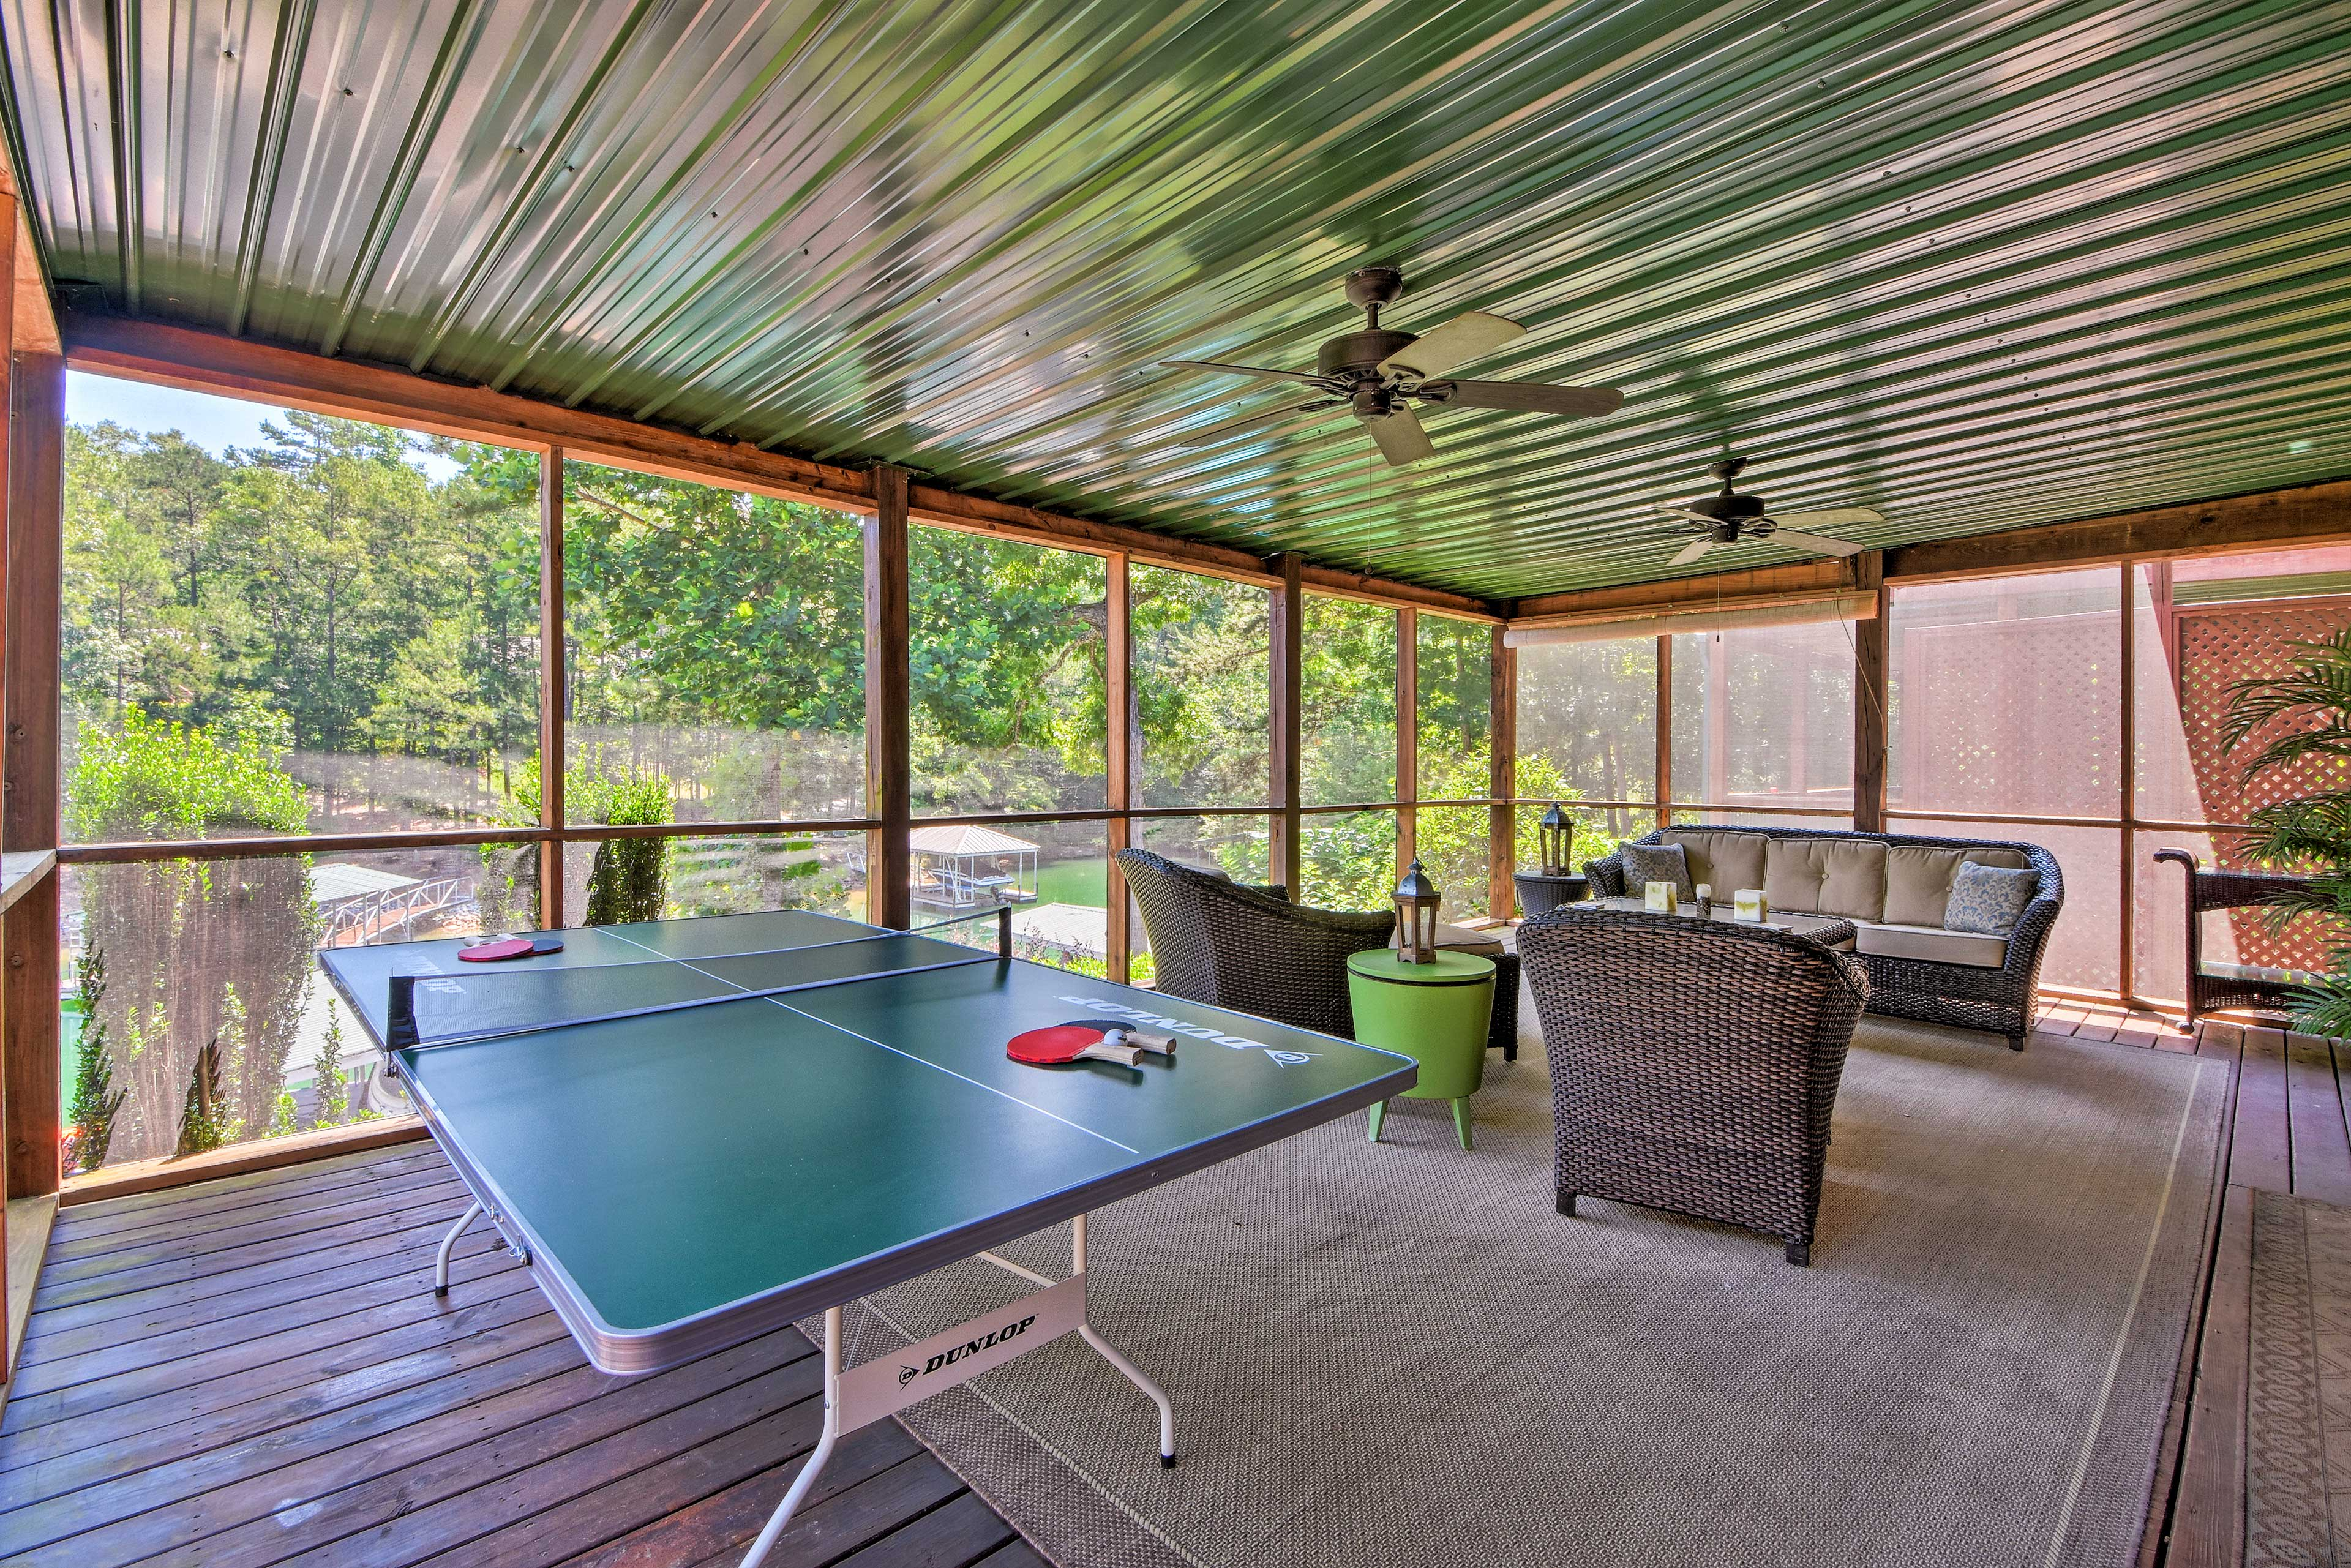 Challenge fellow travelers to a game of ping pong on the new table.